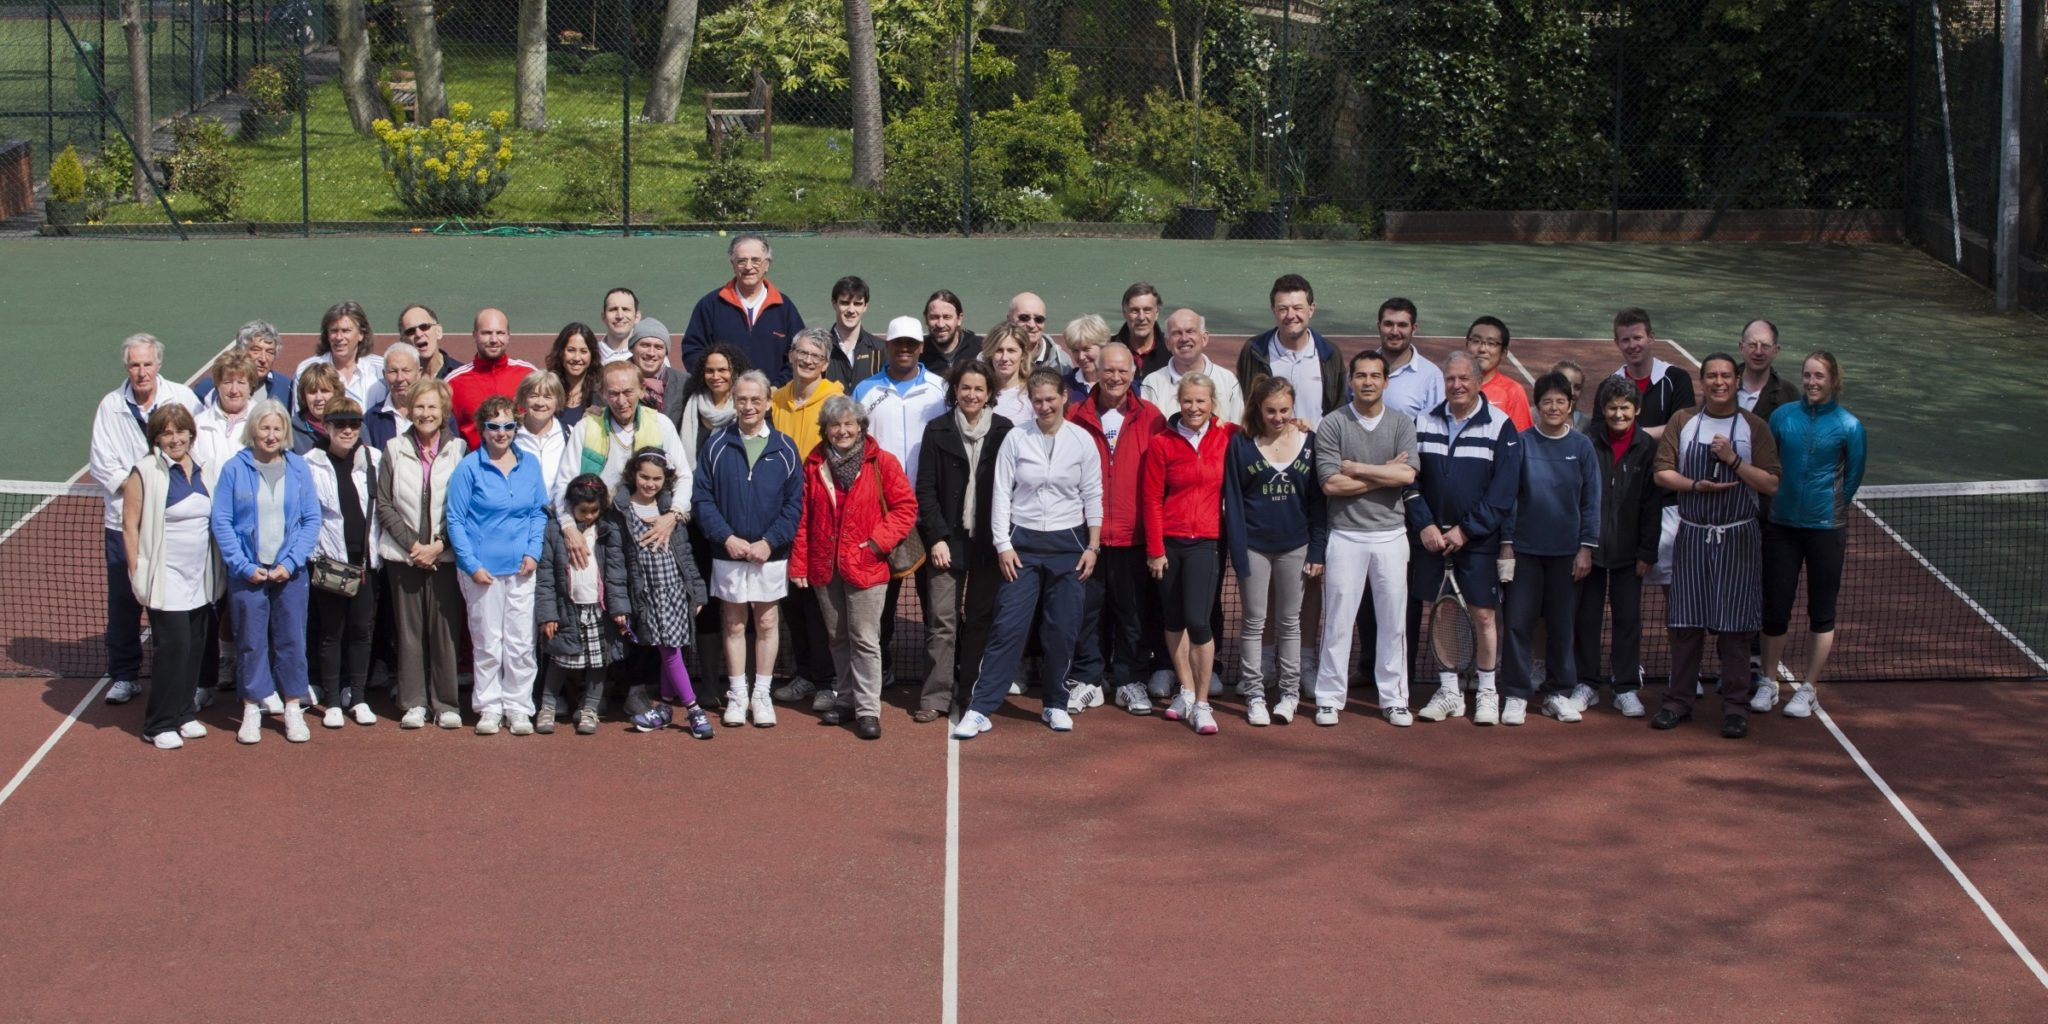 Globe Tennis Club - Group Pic